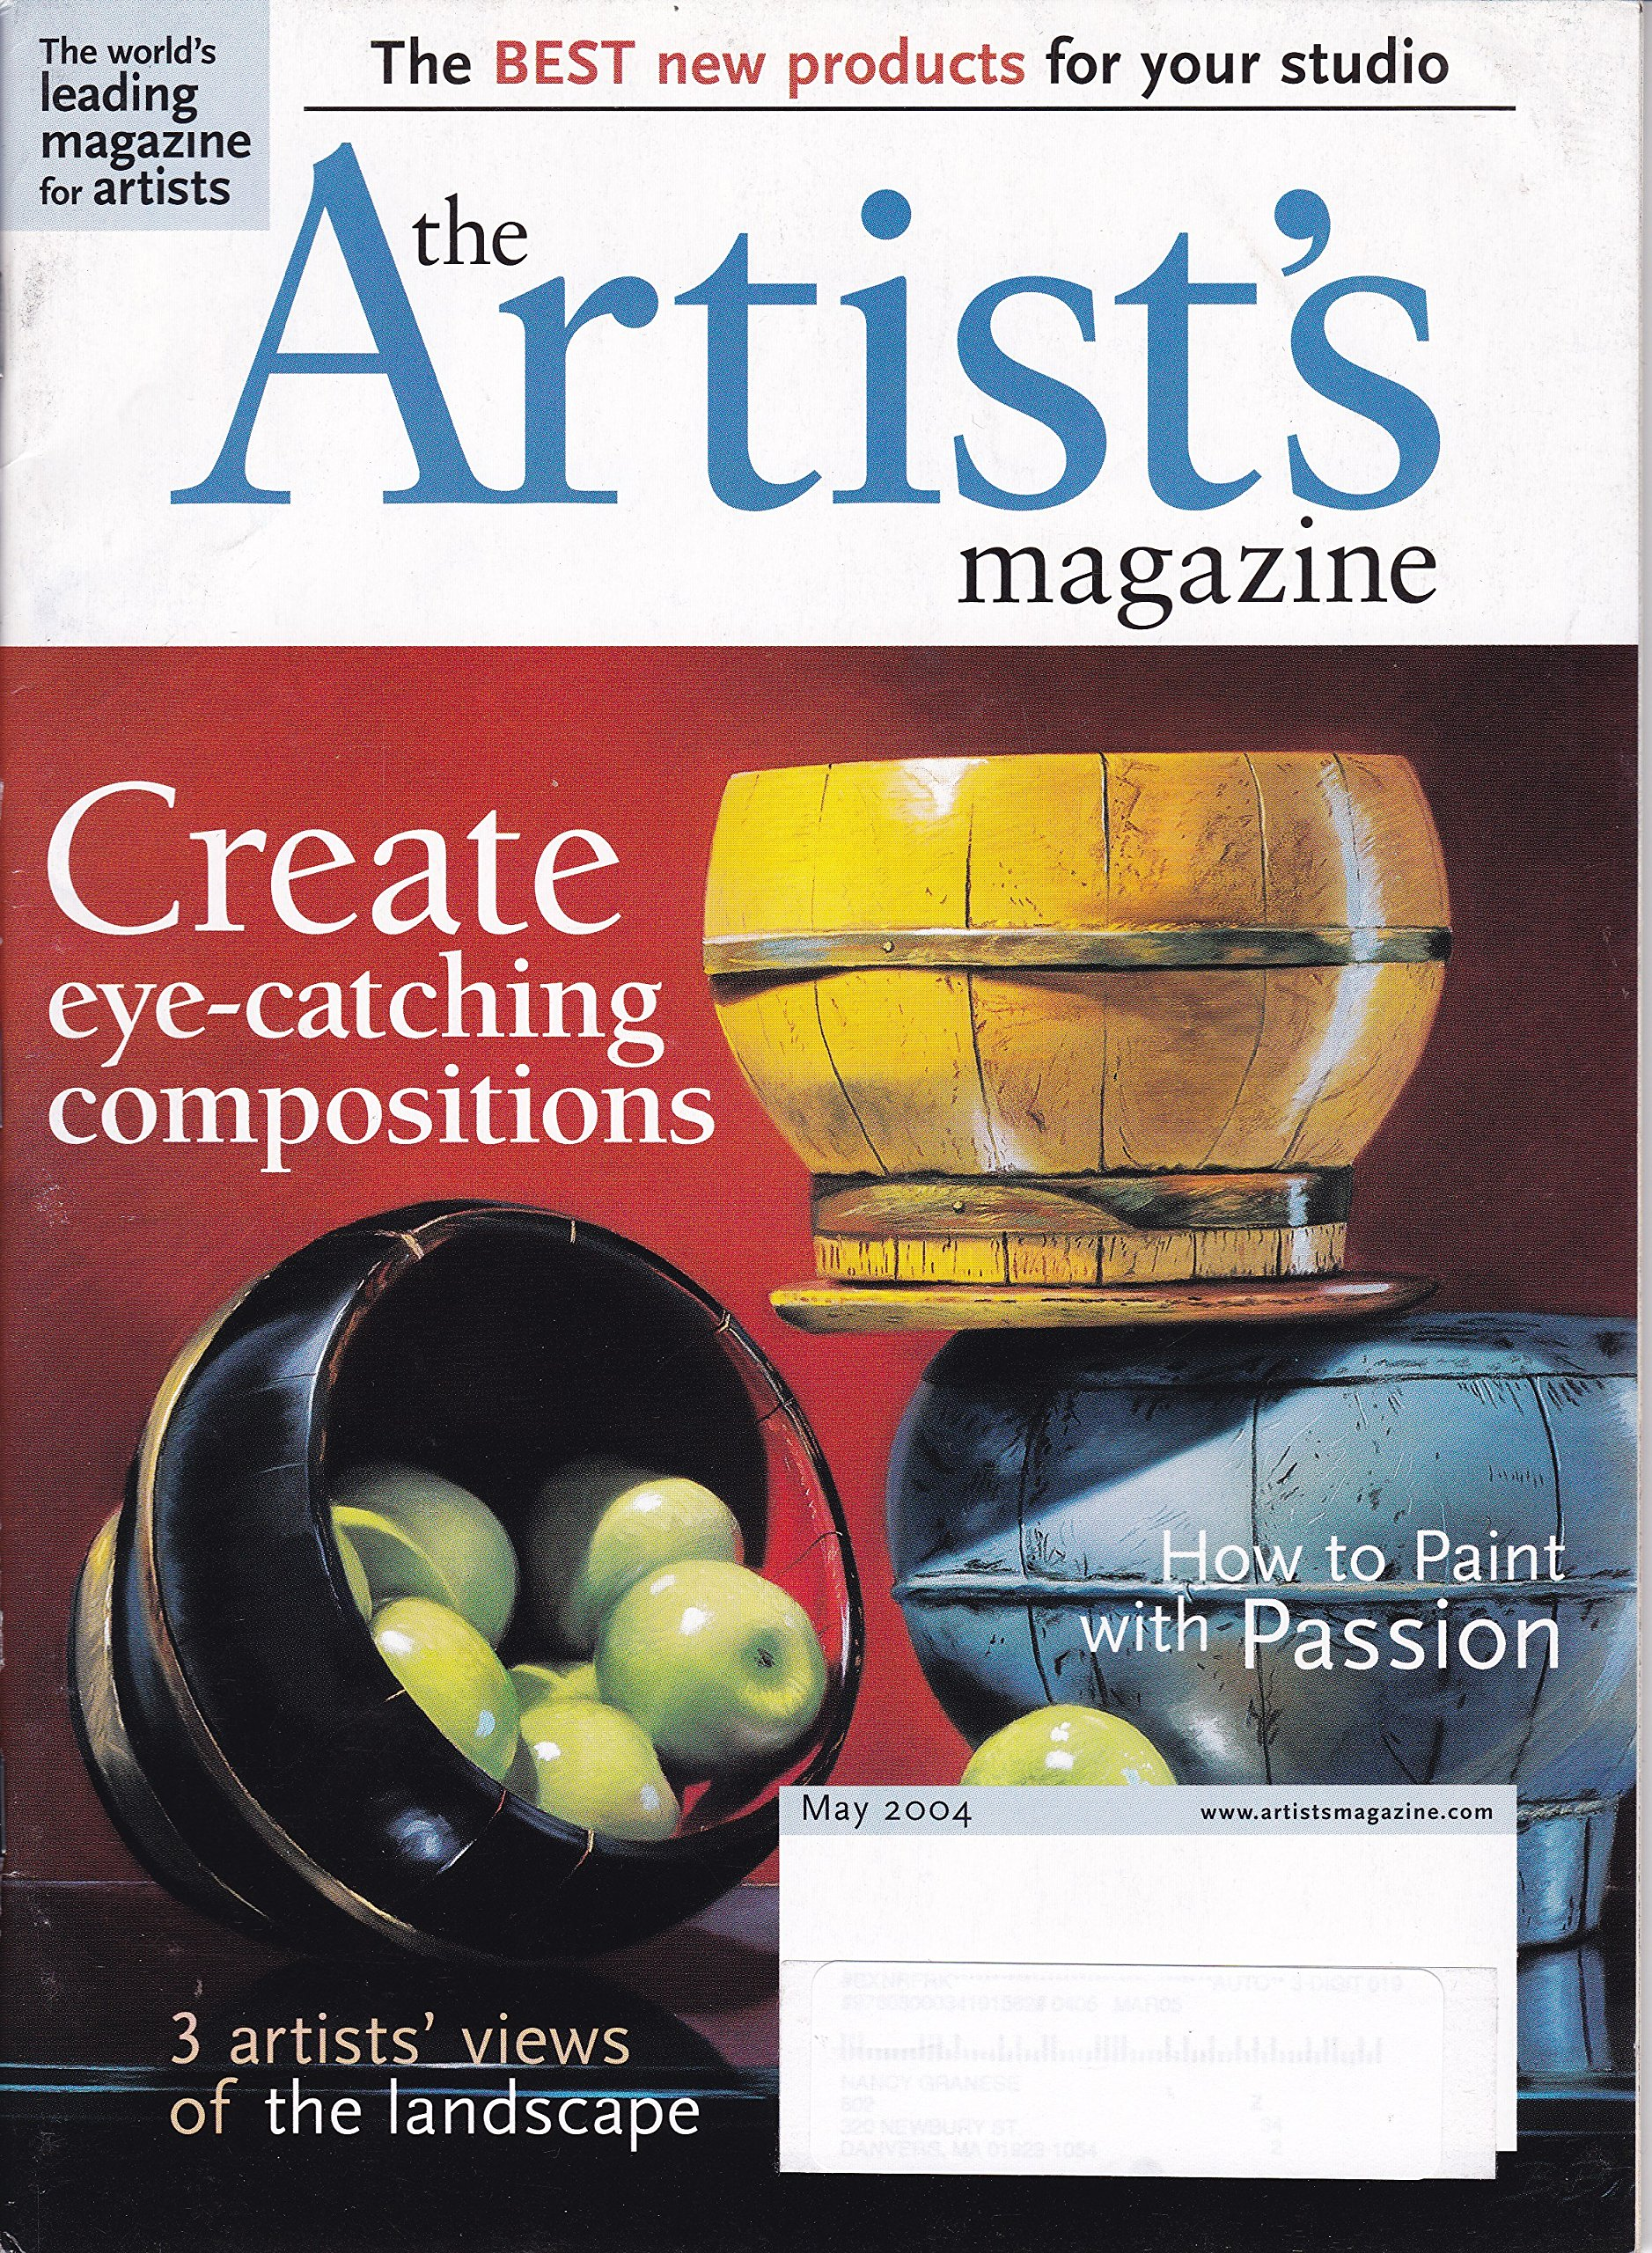 The Artist's Magazine (May 2004) pdf